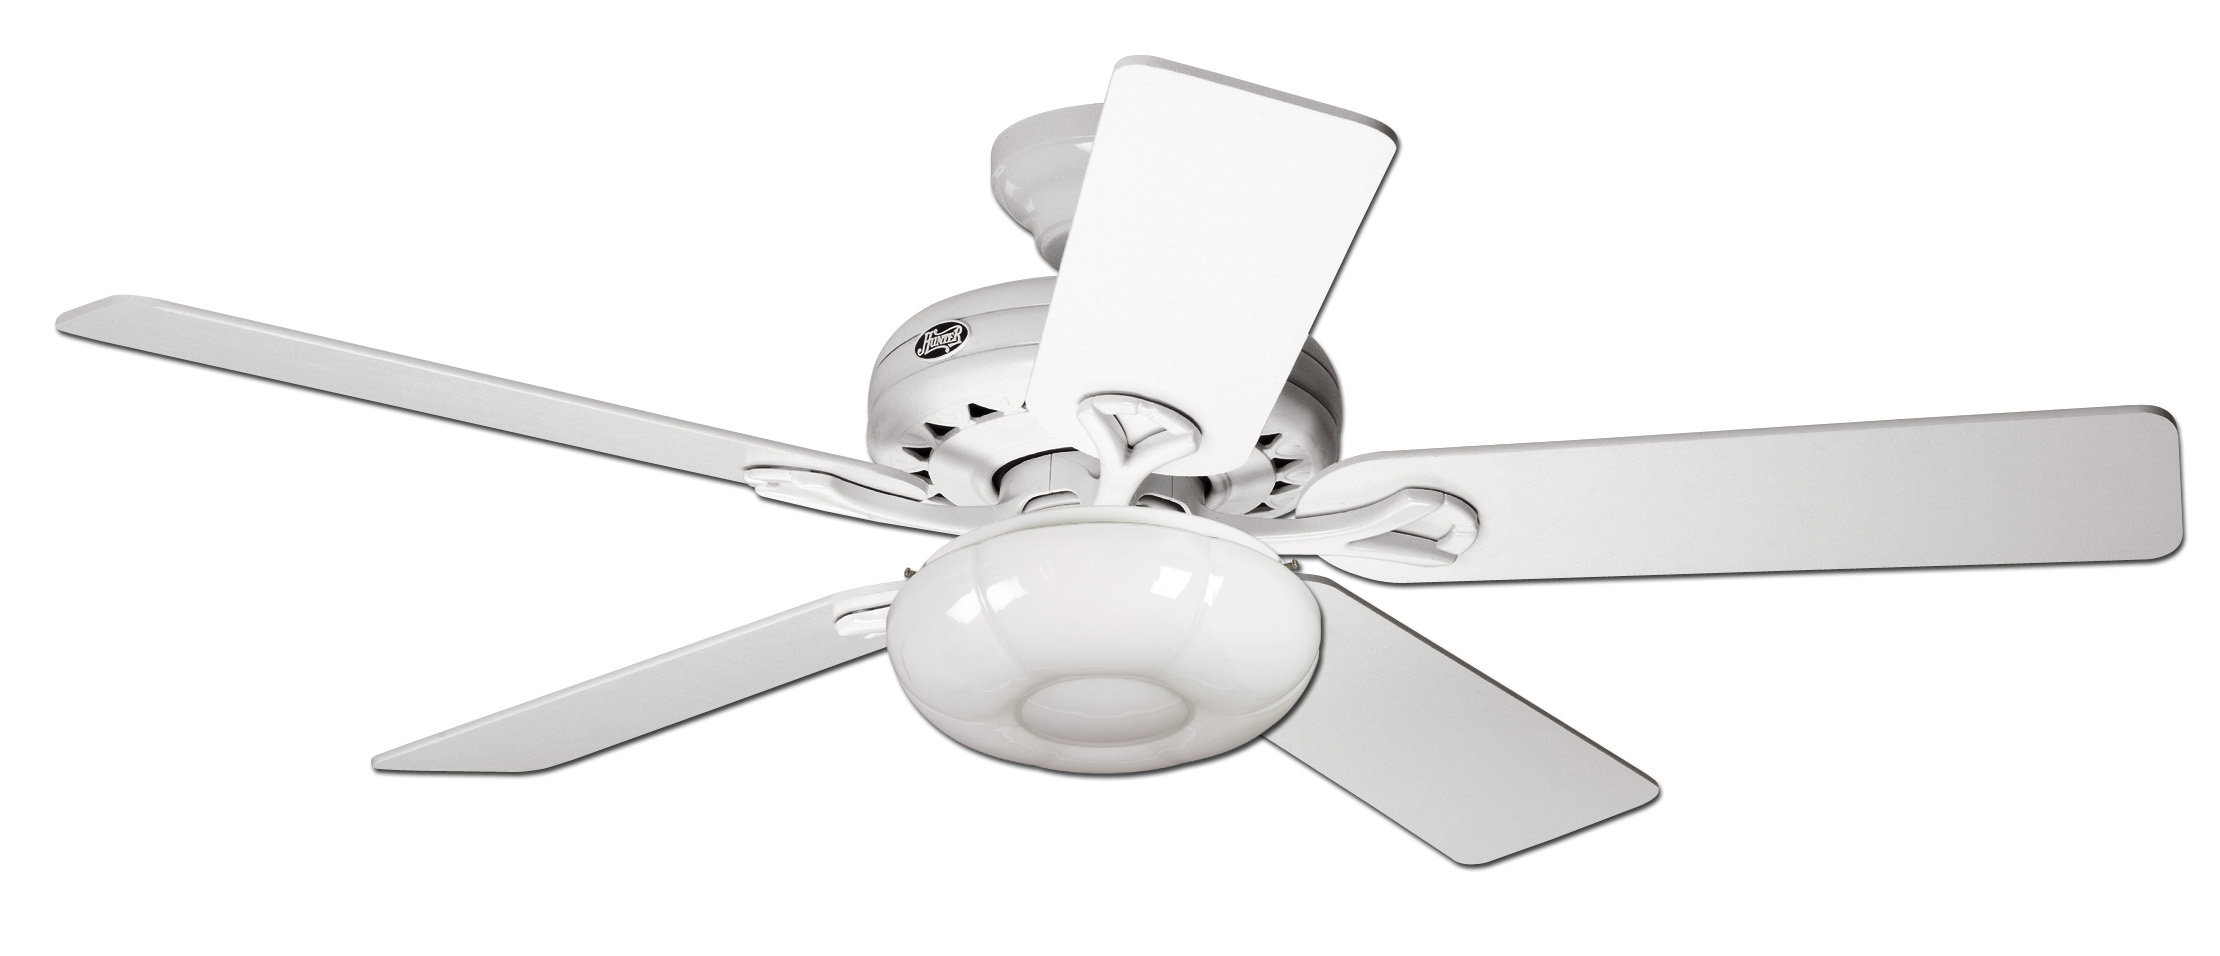 Cooling ceiling | Shop for the Best Price  Compare Deals on Fans